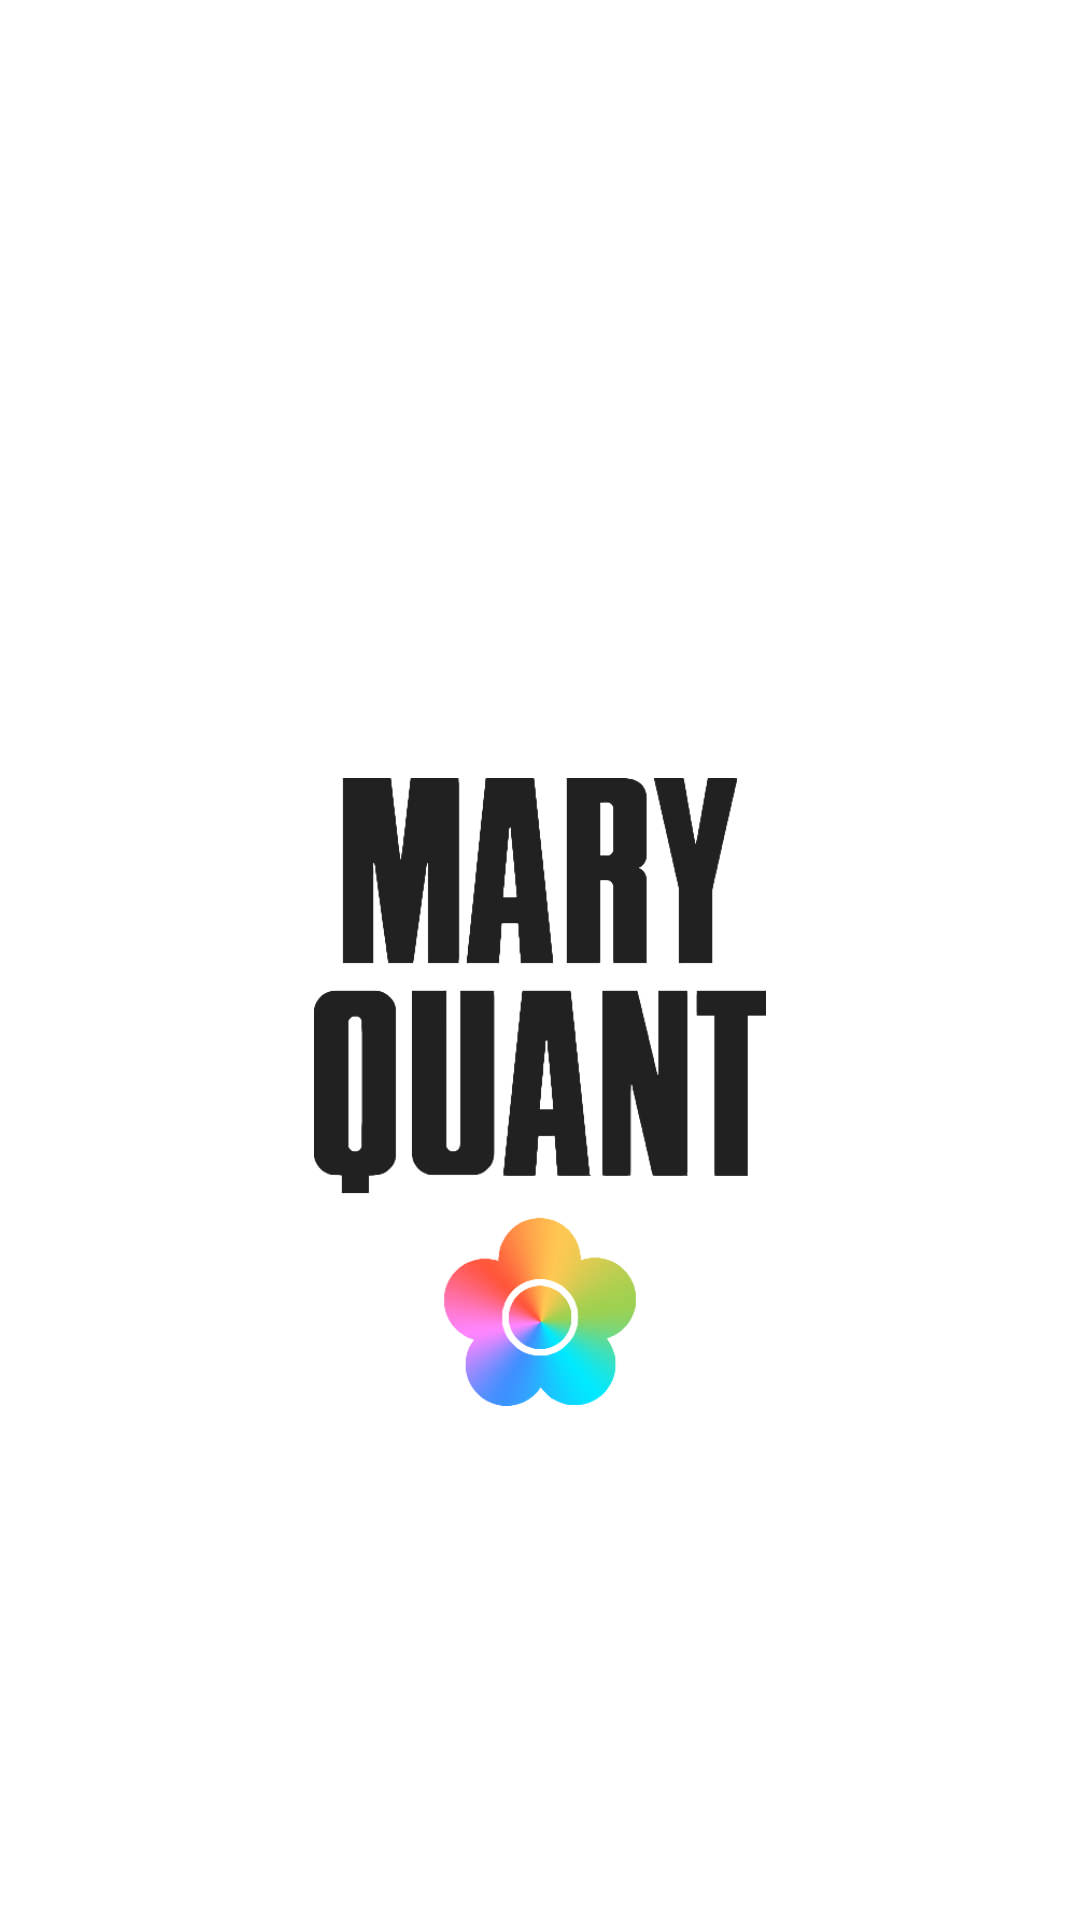 maryquant i20 - 20 MARY QUANT HQ Smartphone Wallpaper Collection